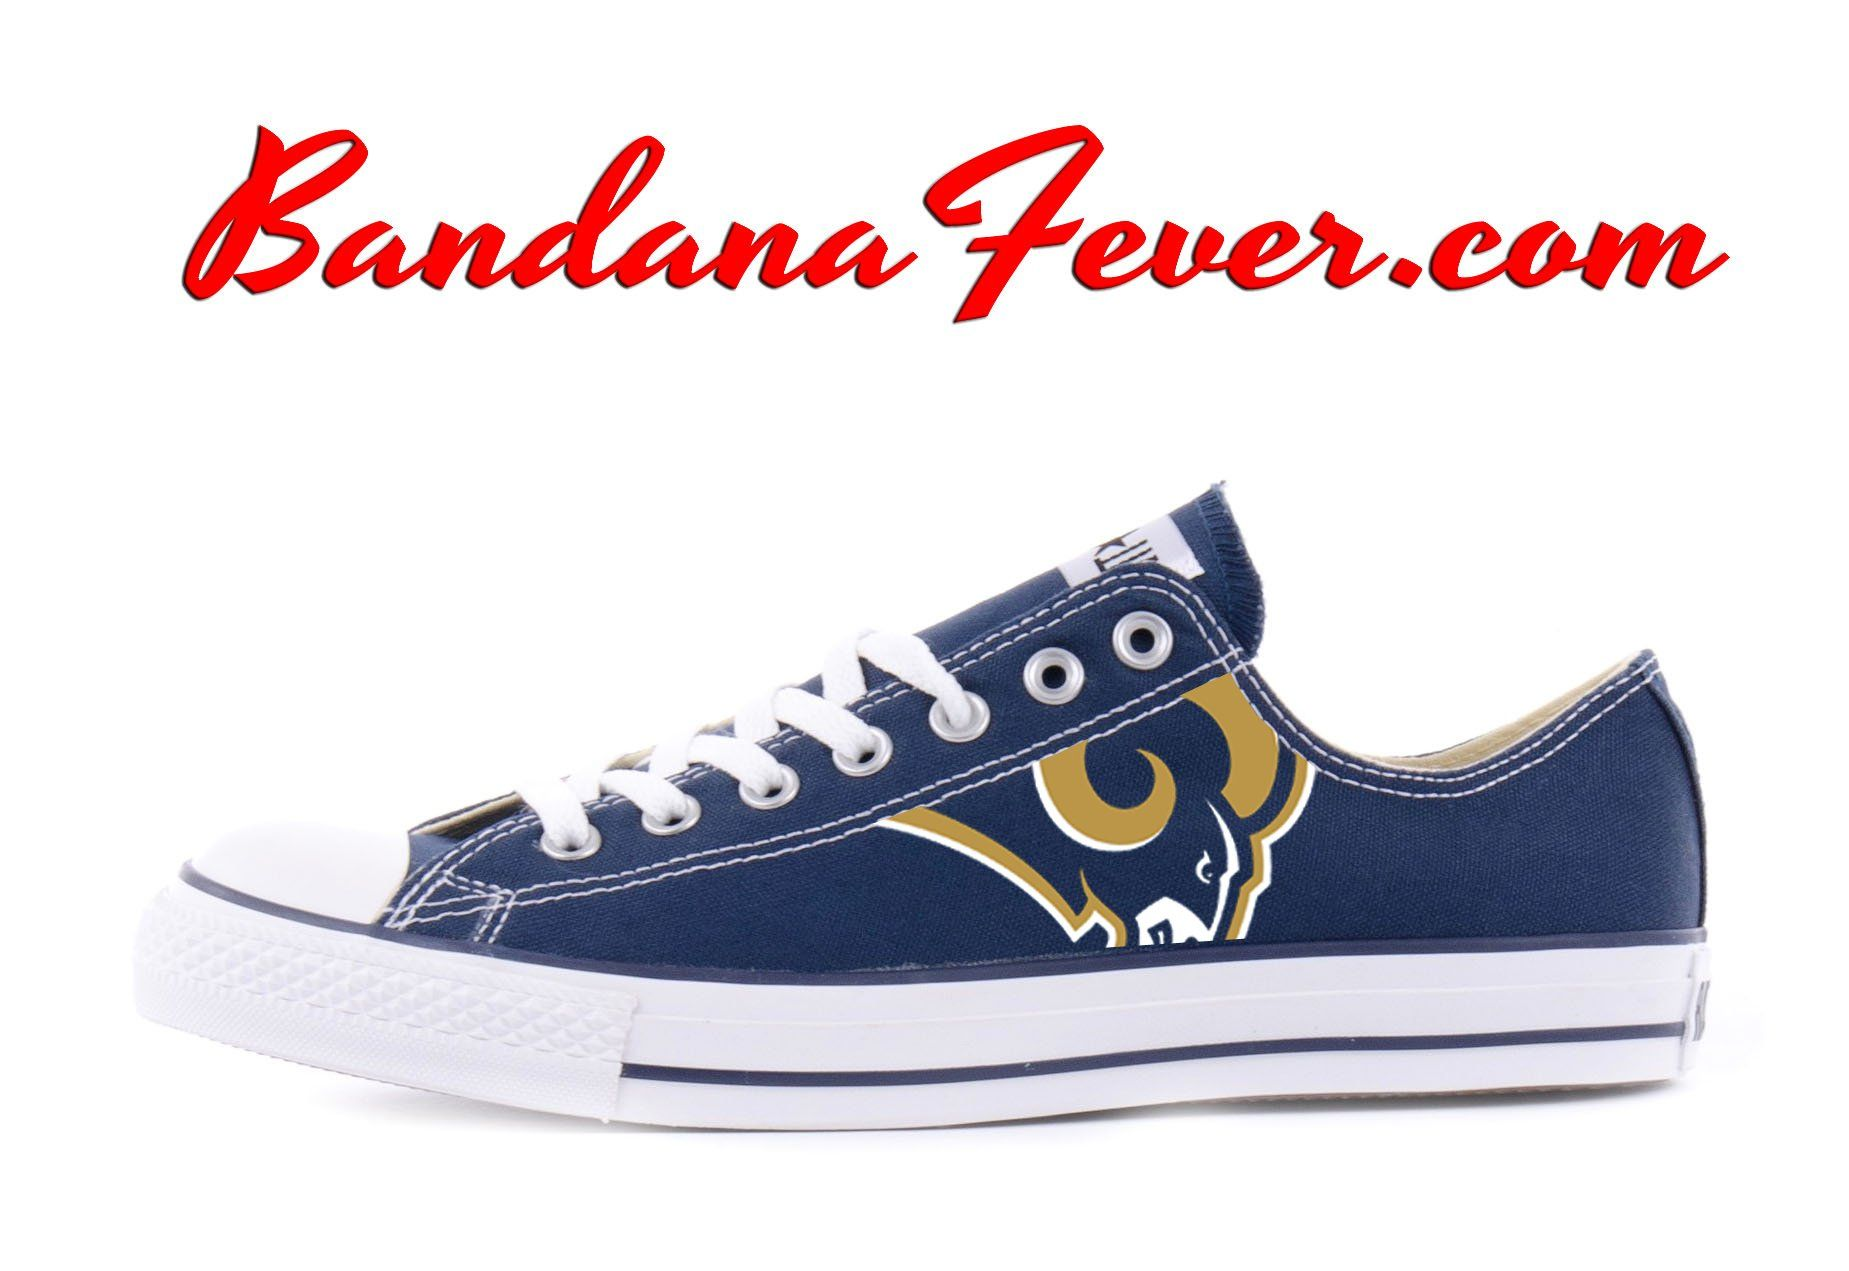 Customized LA Rams Converse Sneakers 257e2441b02e